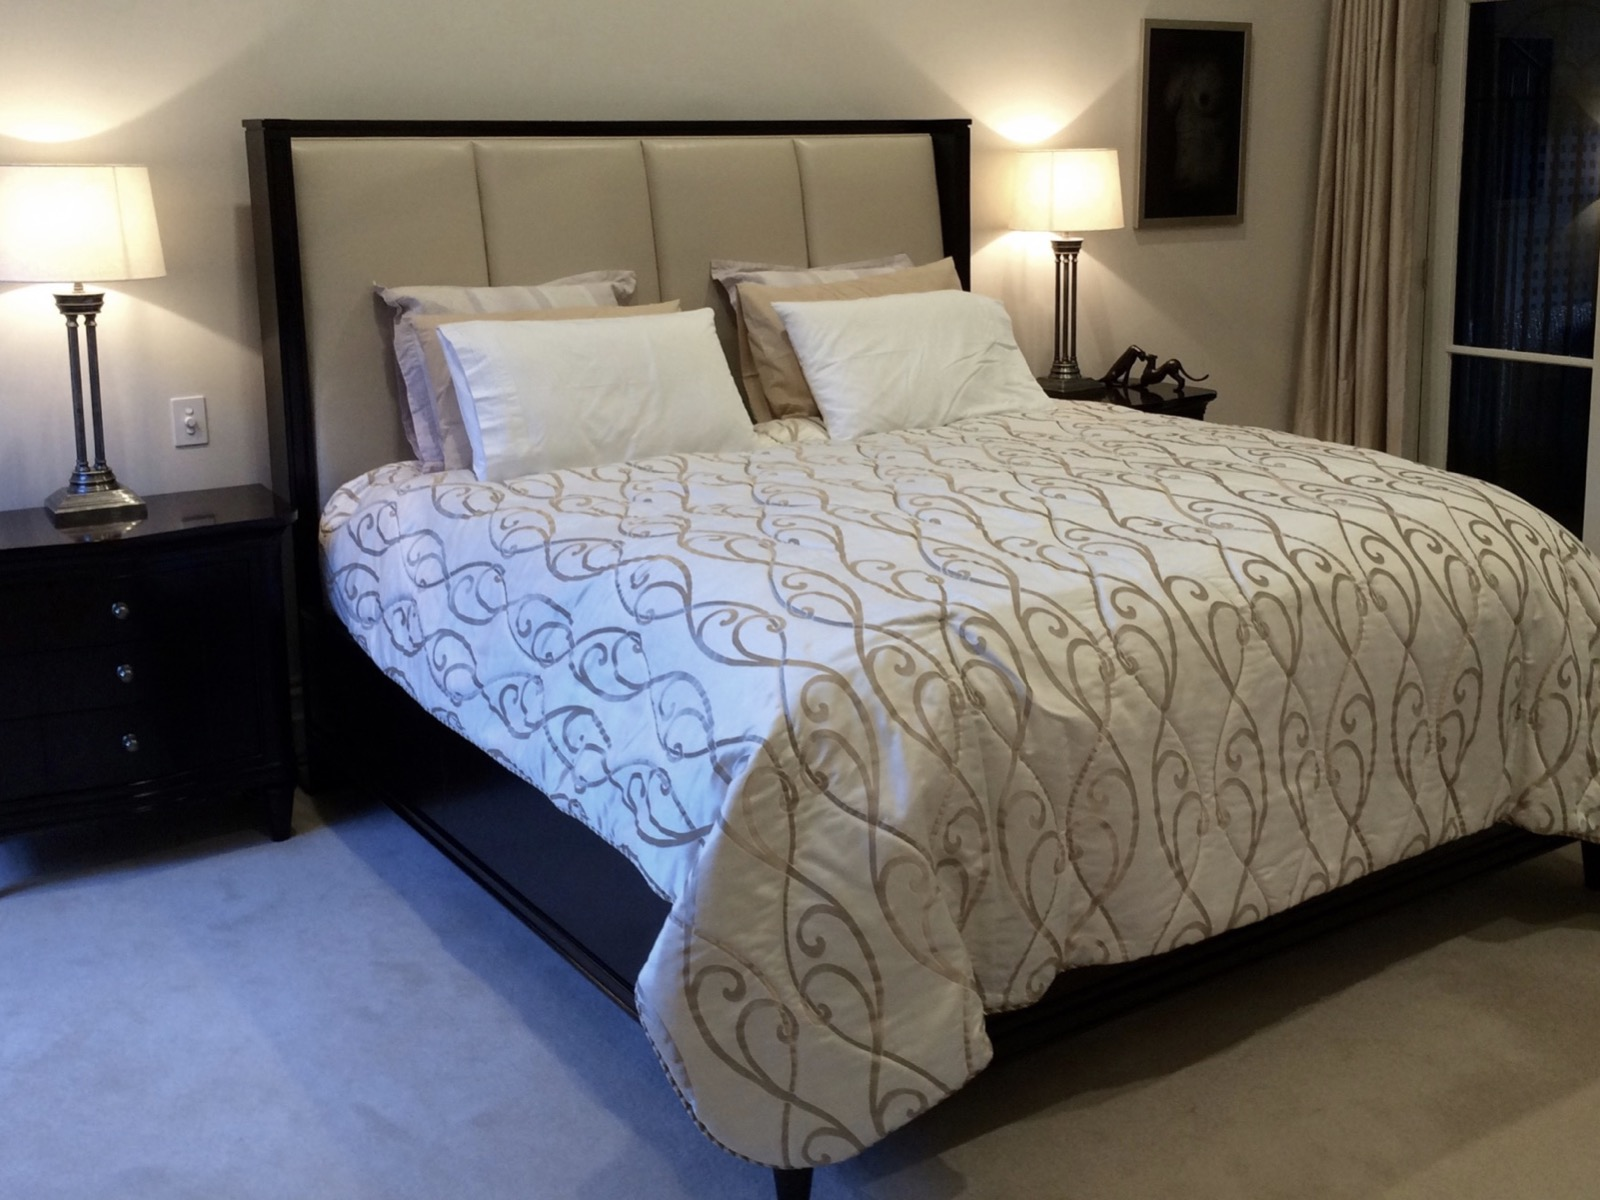 Interior Design Ideas - Bedroom Design - Leigh Woollatt